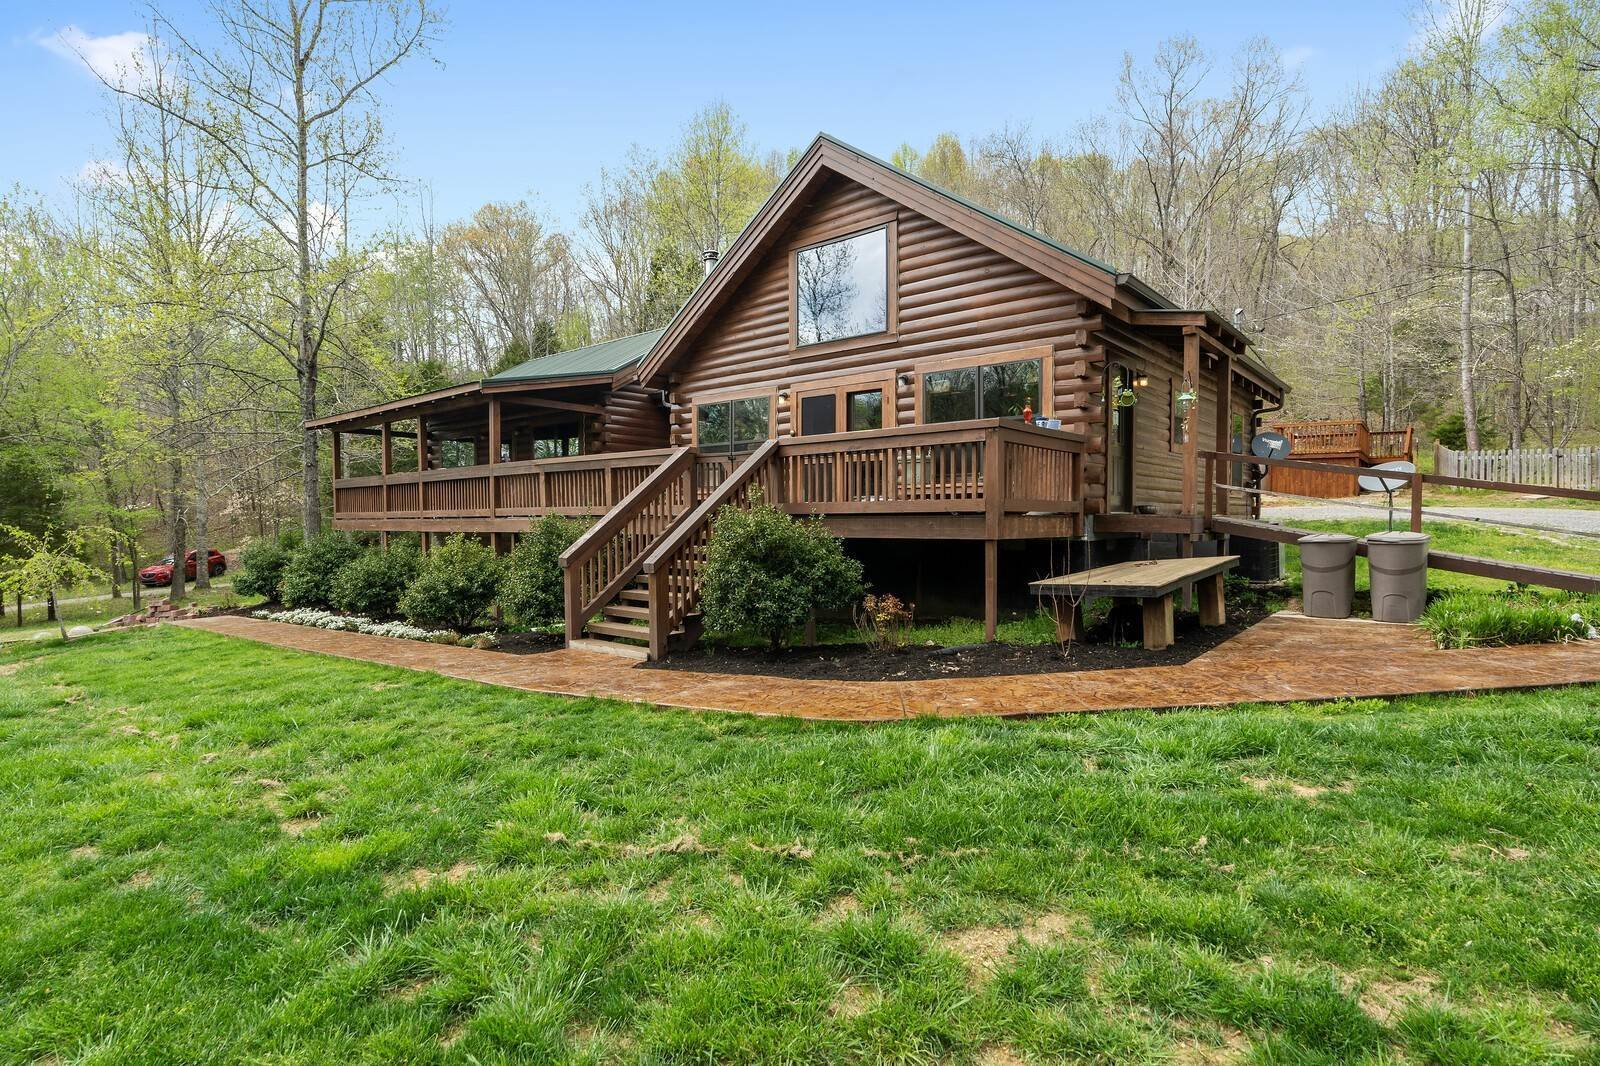 Single Family Homes for Sale at 3527 Browns Lake Road Goodlettsville, Tennessee 37072 United States